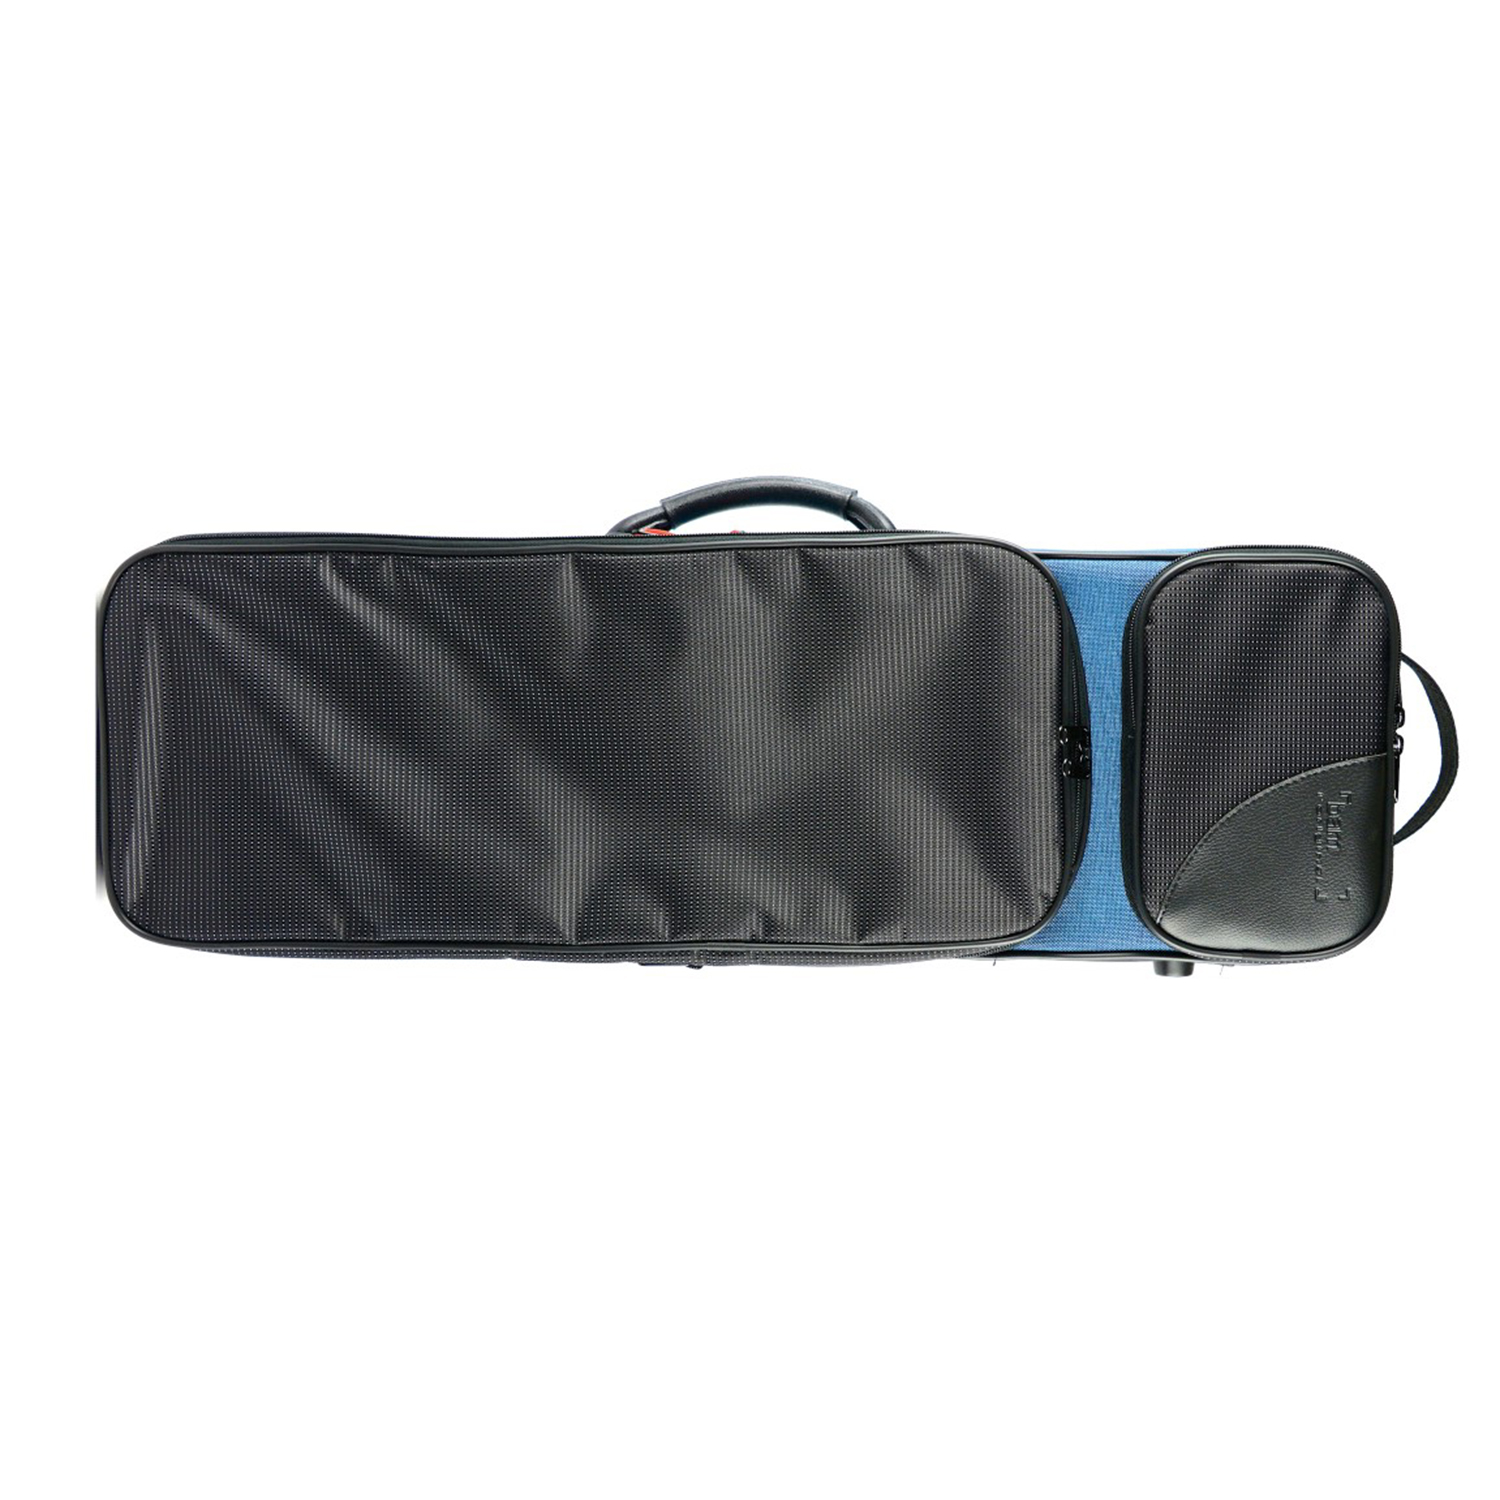 6be28a608bc821 BAM Classic small violin case - Oblong Cases - available at paganino.com